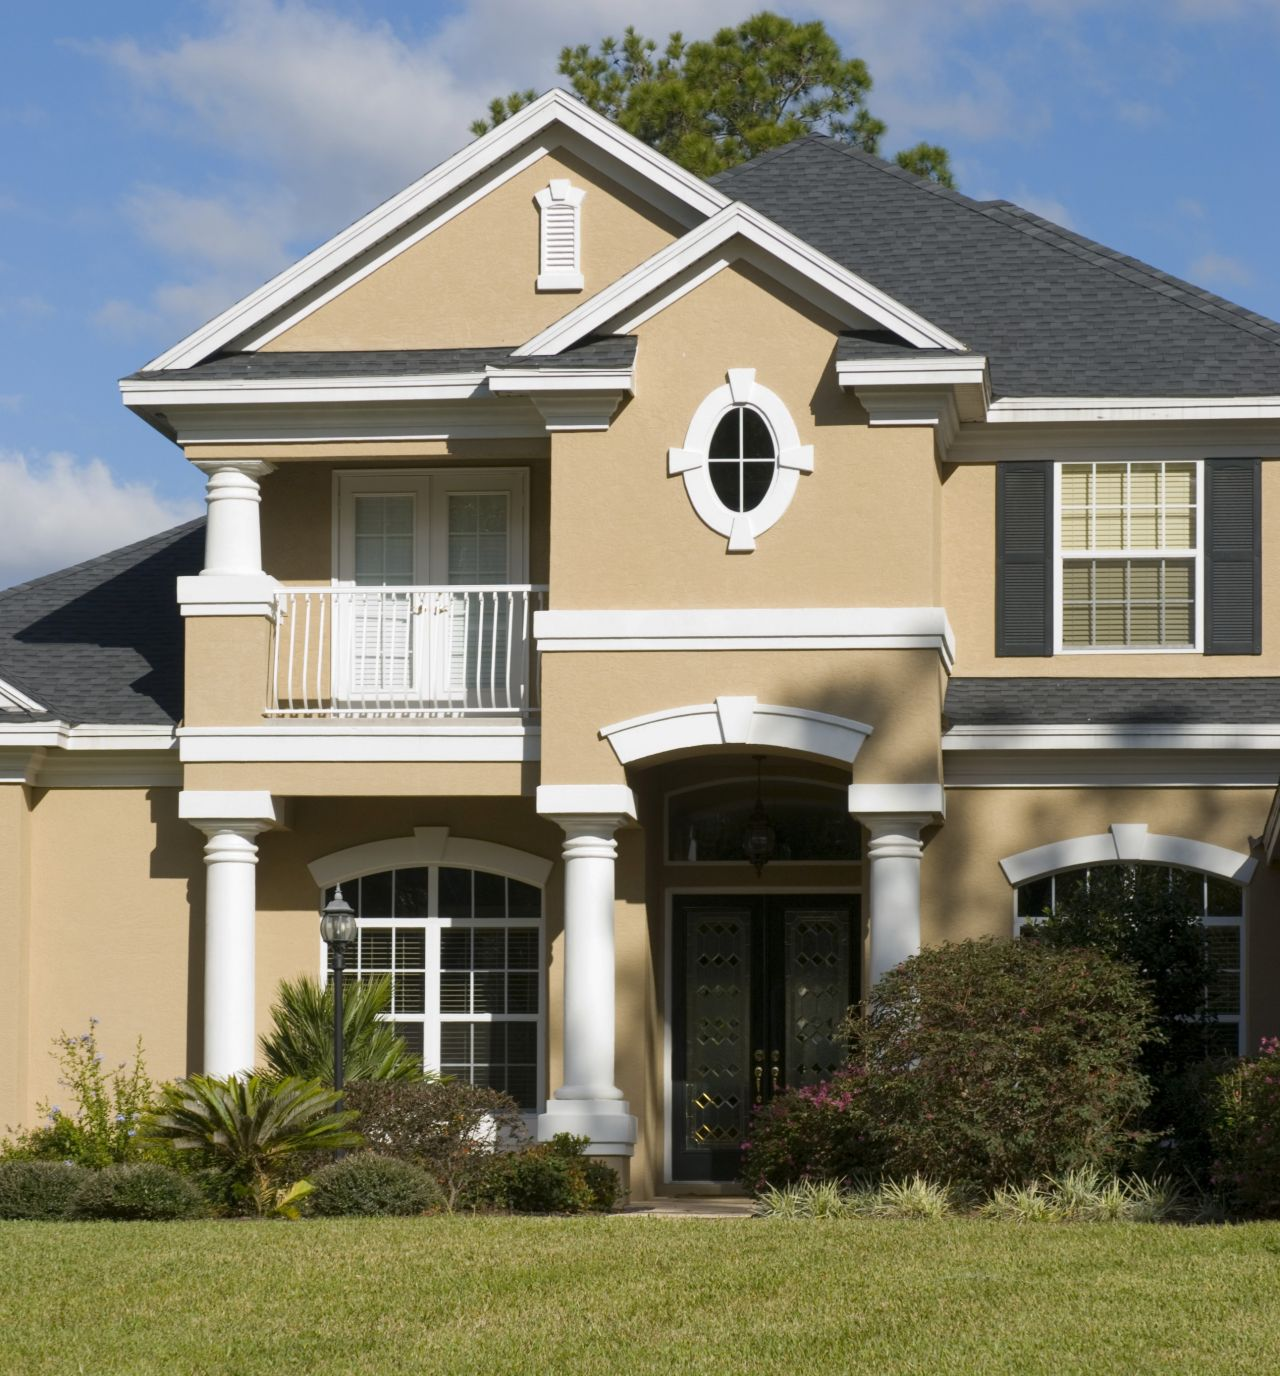 Exterior paint schemes and consider your surroundings for Exterior house paint schemes